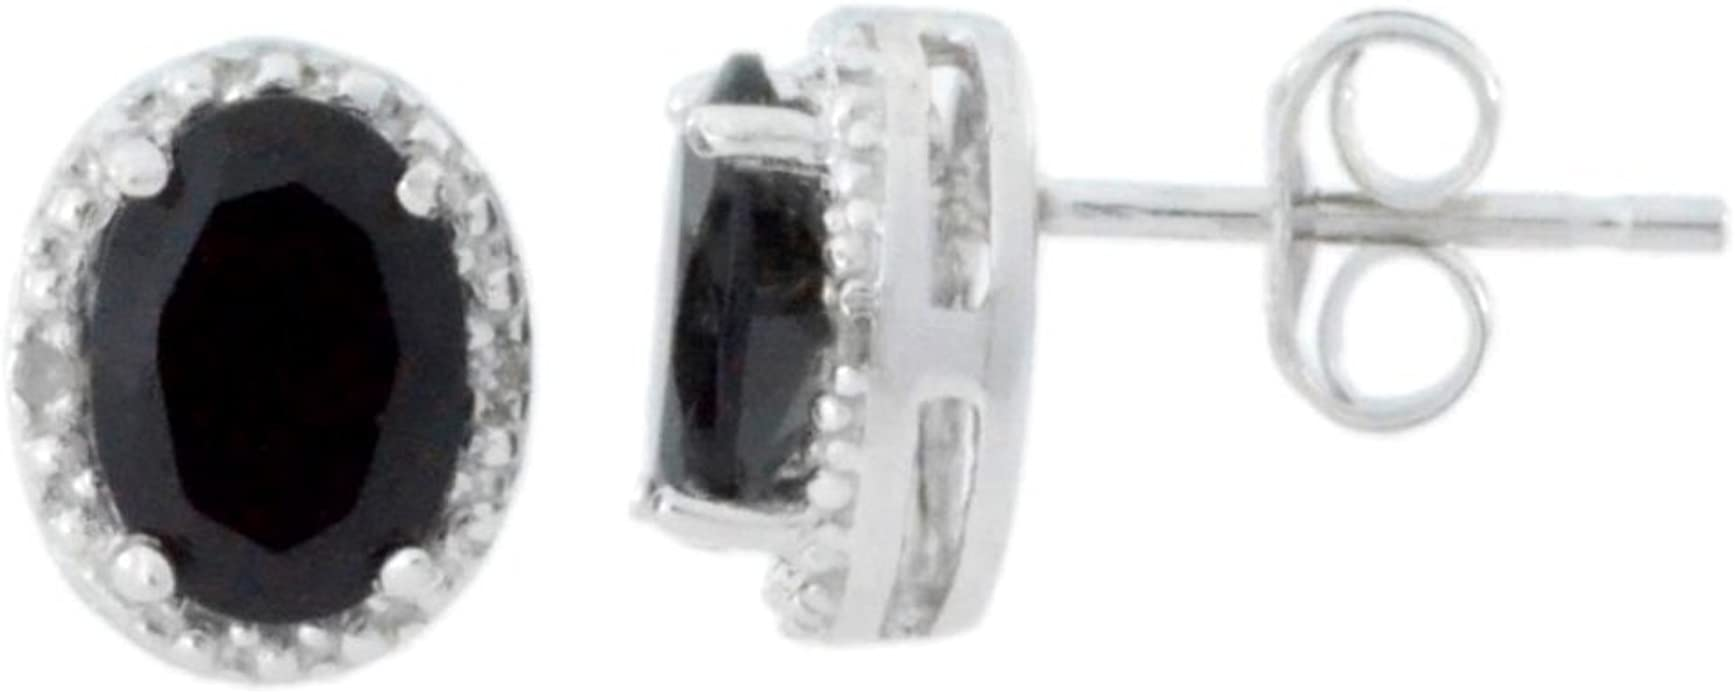 Oval Cut 2 carat 14k White Gold Sterling Silver Solitaire Stud Earrings New